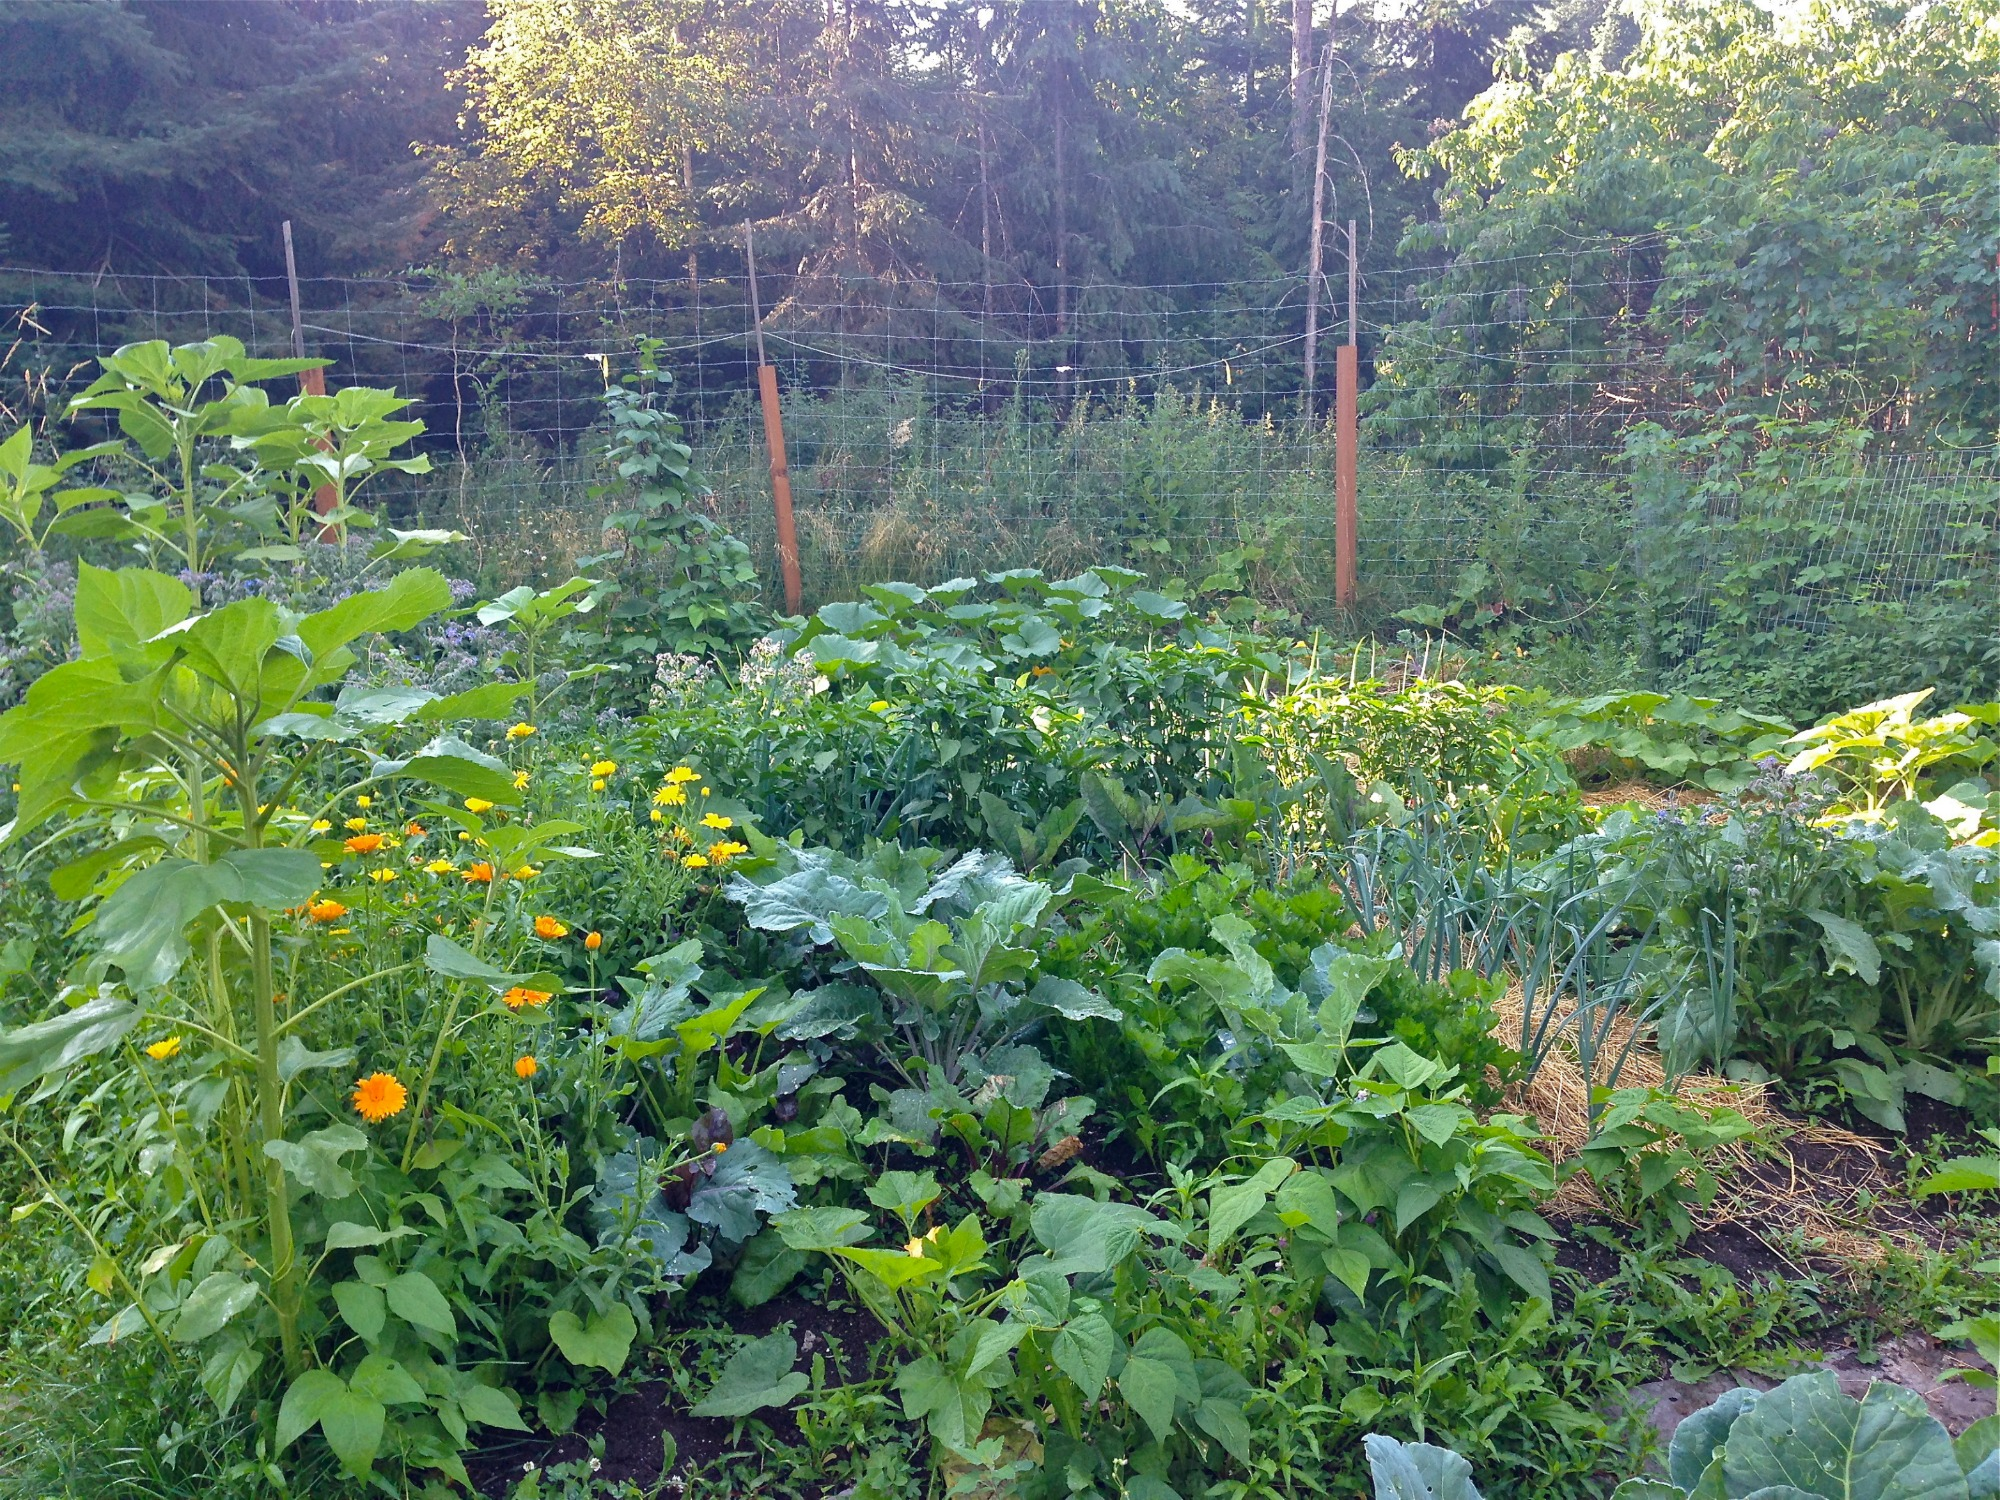 Food garden pictures - My Goal Is To Help You